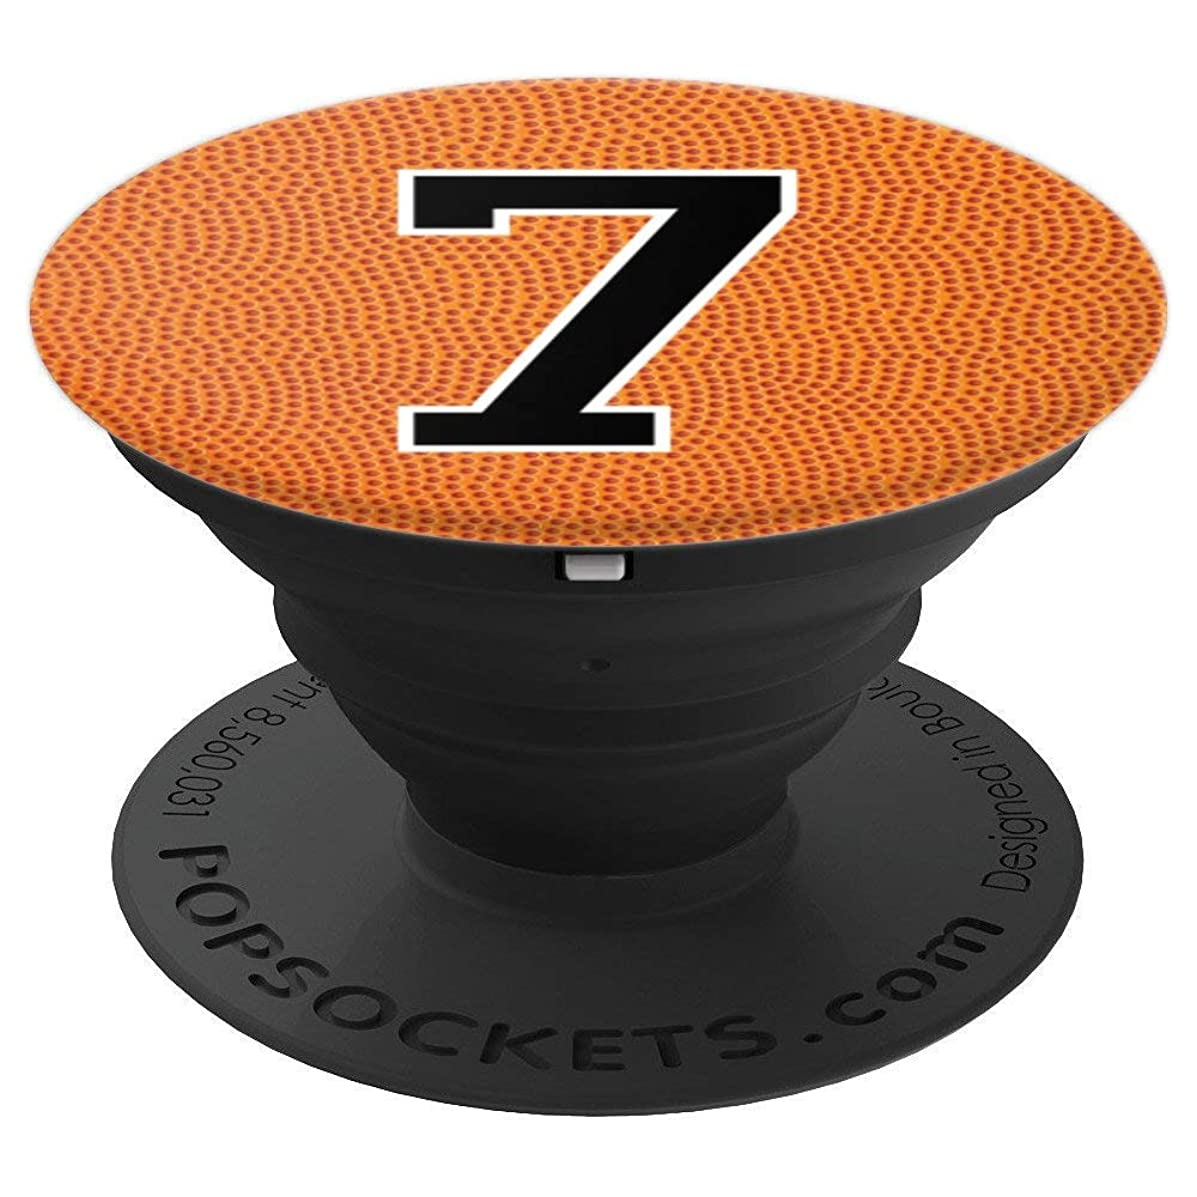 Basketball Number 7 Jersey Uniform Gift For Men Women - PopSockets Grip and Stand for Phones and Tablets